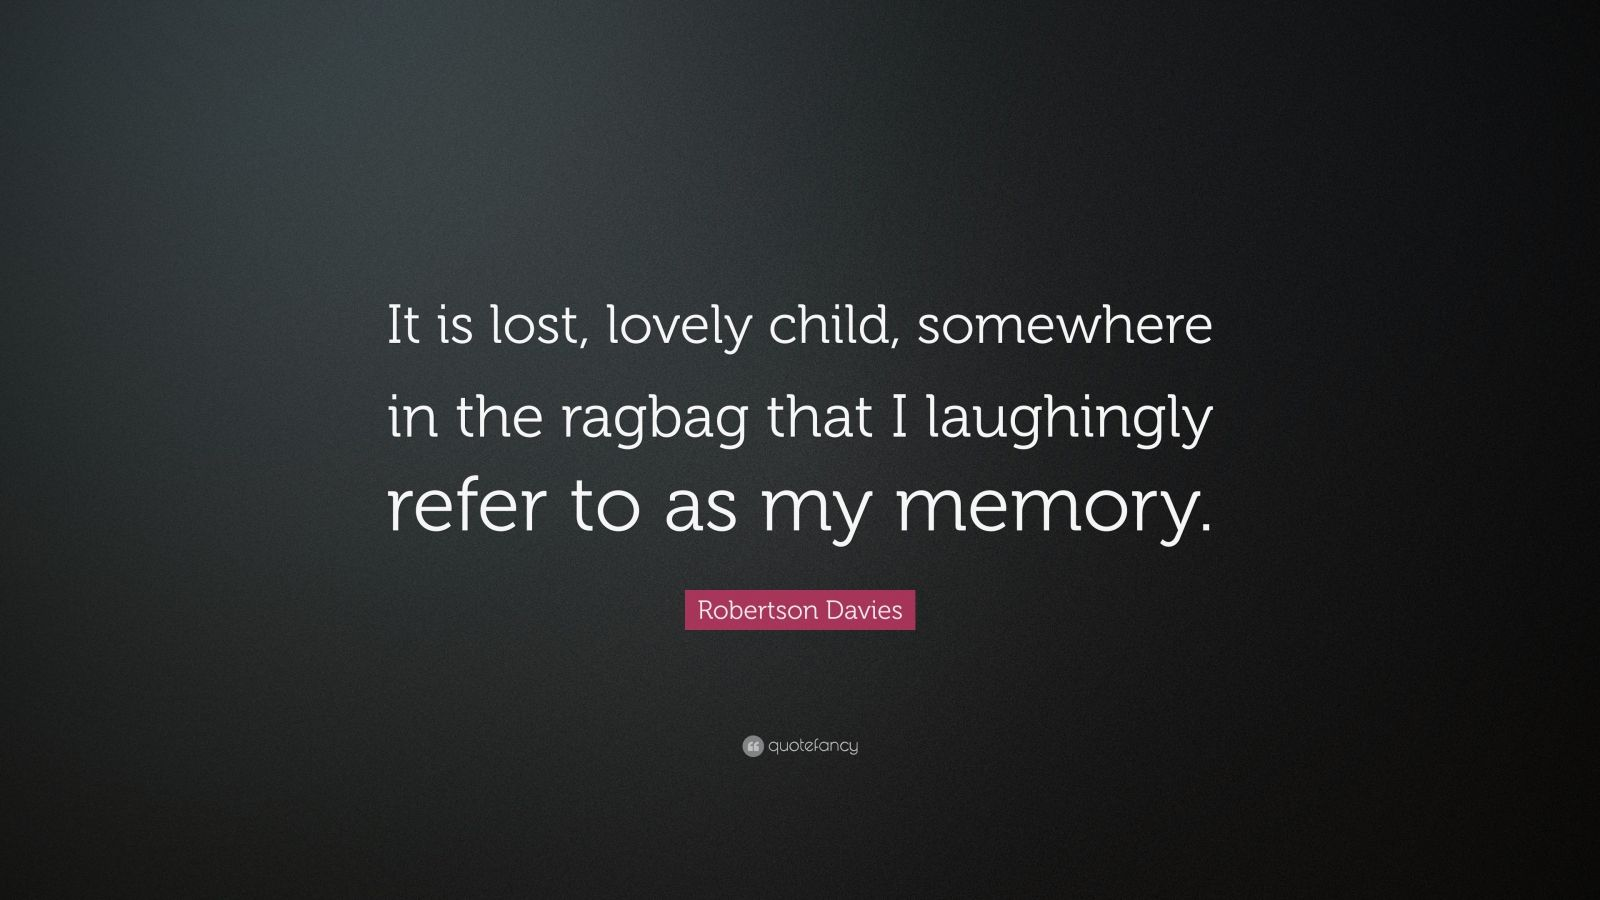 """Robertson Davies Quote: """"It is lost, lovely child, somewhere in the ragbag that I laughingly refer to as my memory."""""""